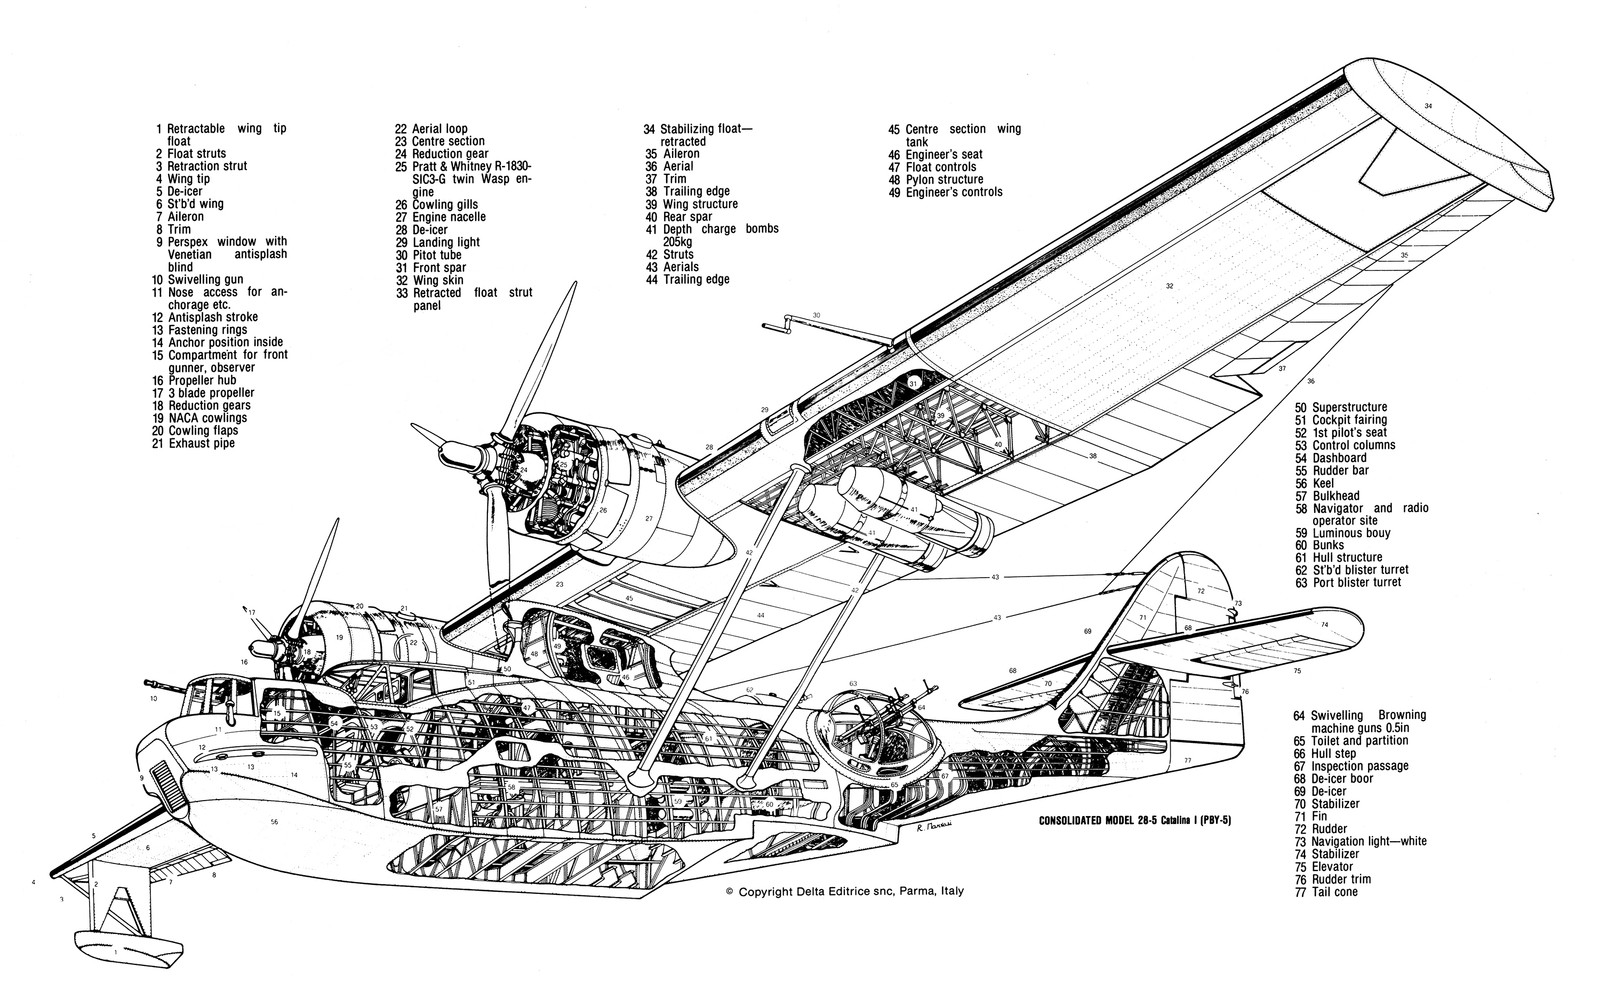 the cutaway drawing and its artists - page 267